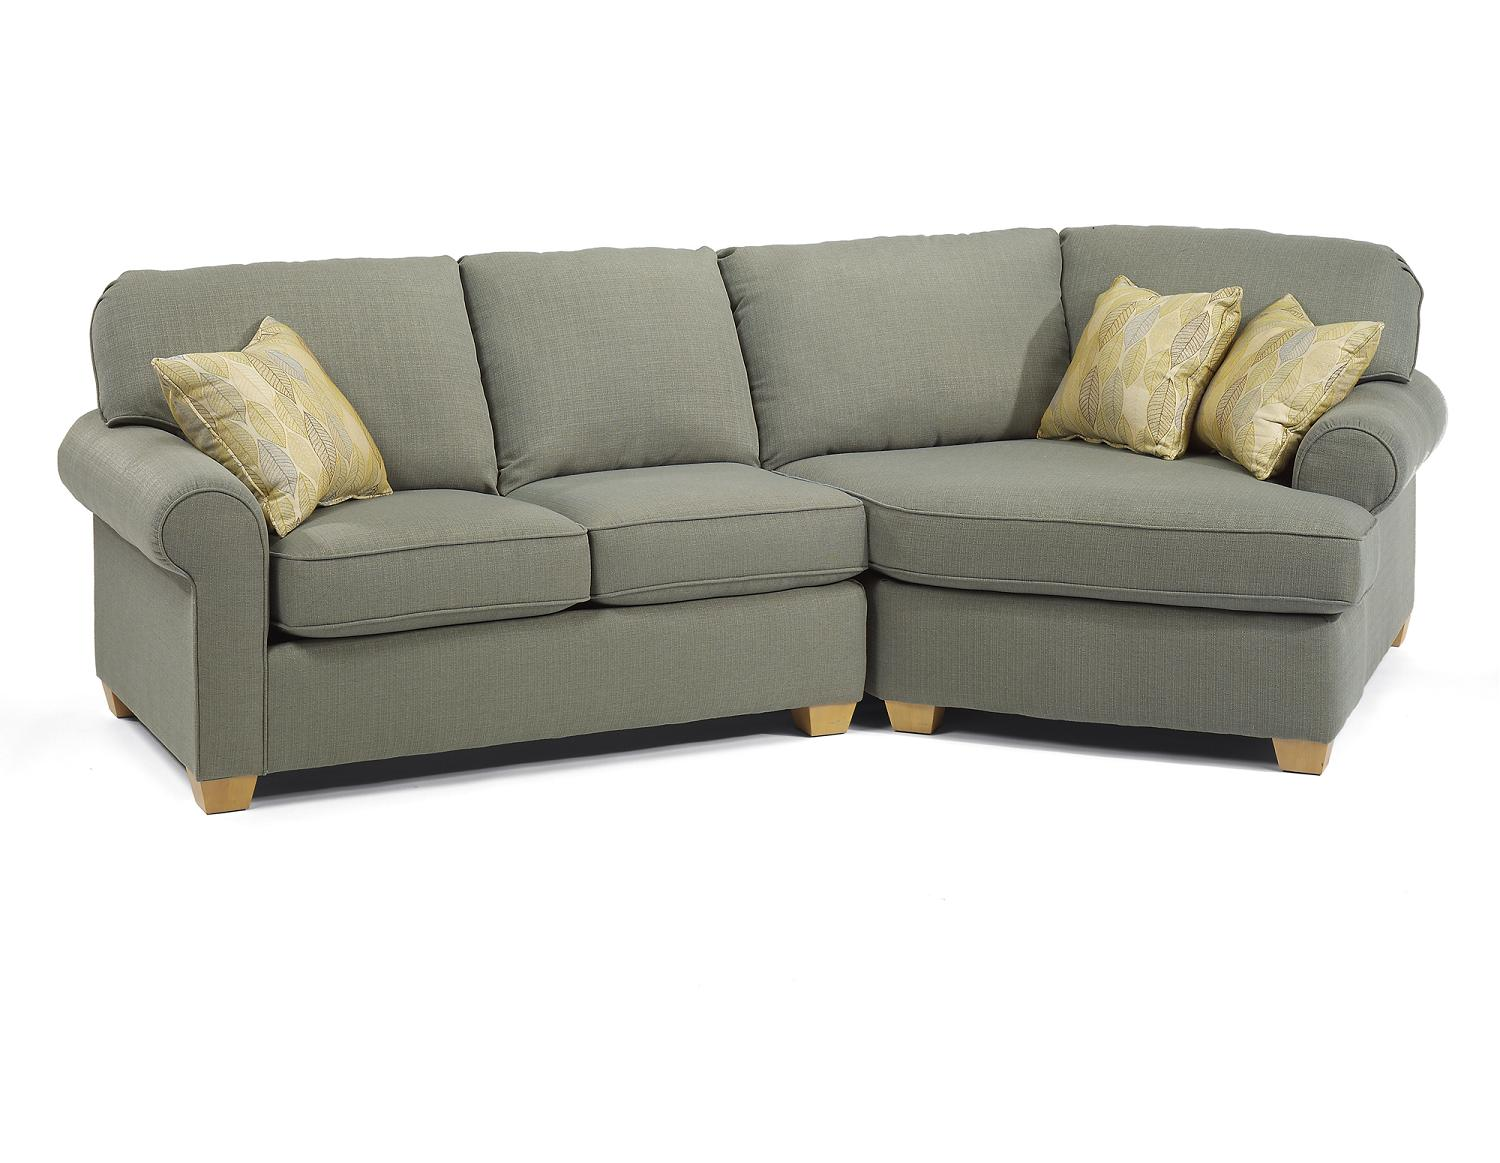 45 Degree Sectional Sofa Decorating Interior Of Your House